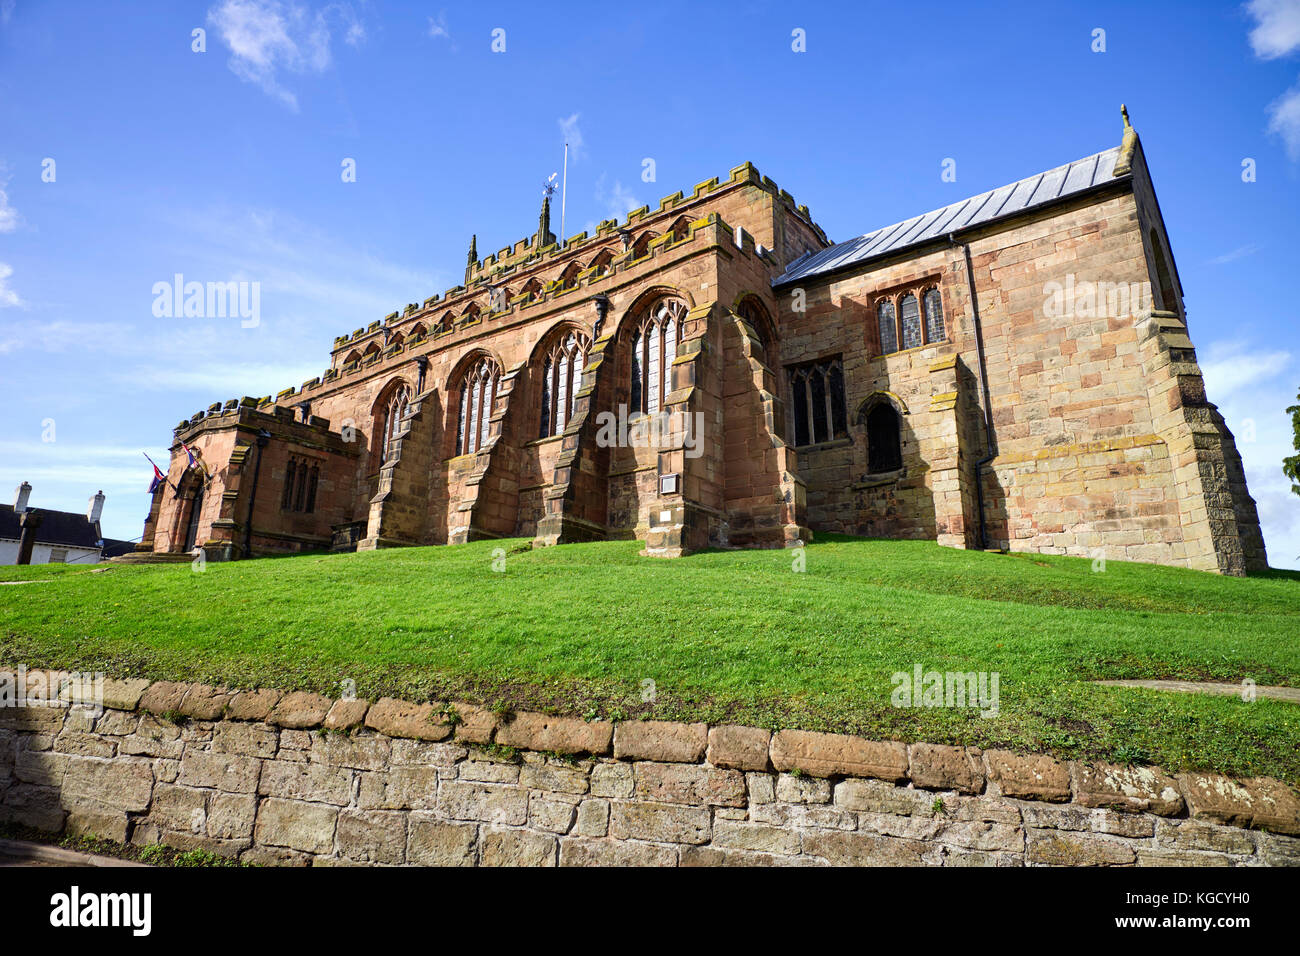 St James' church in Audlem, Cheshire - Stock Image